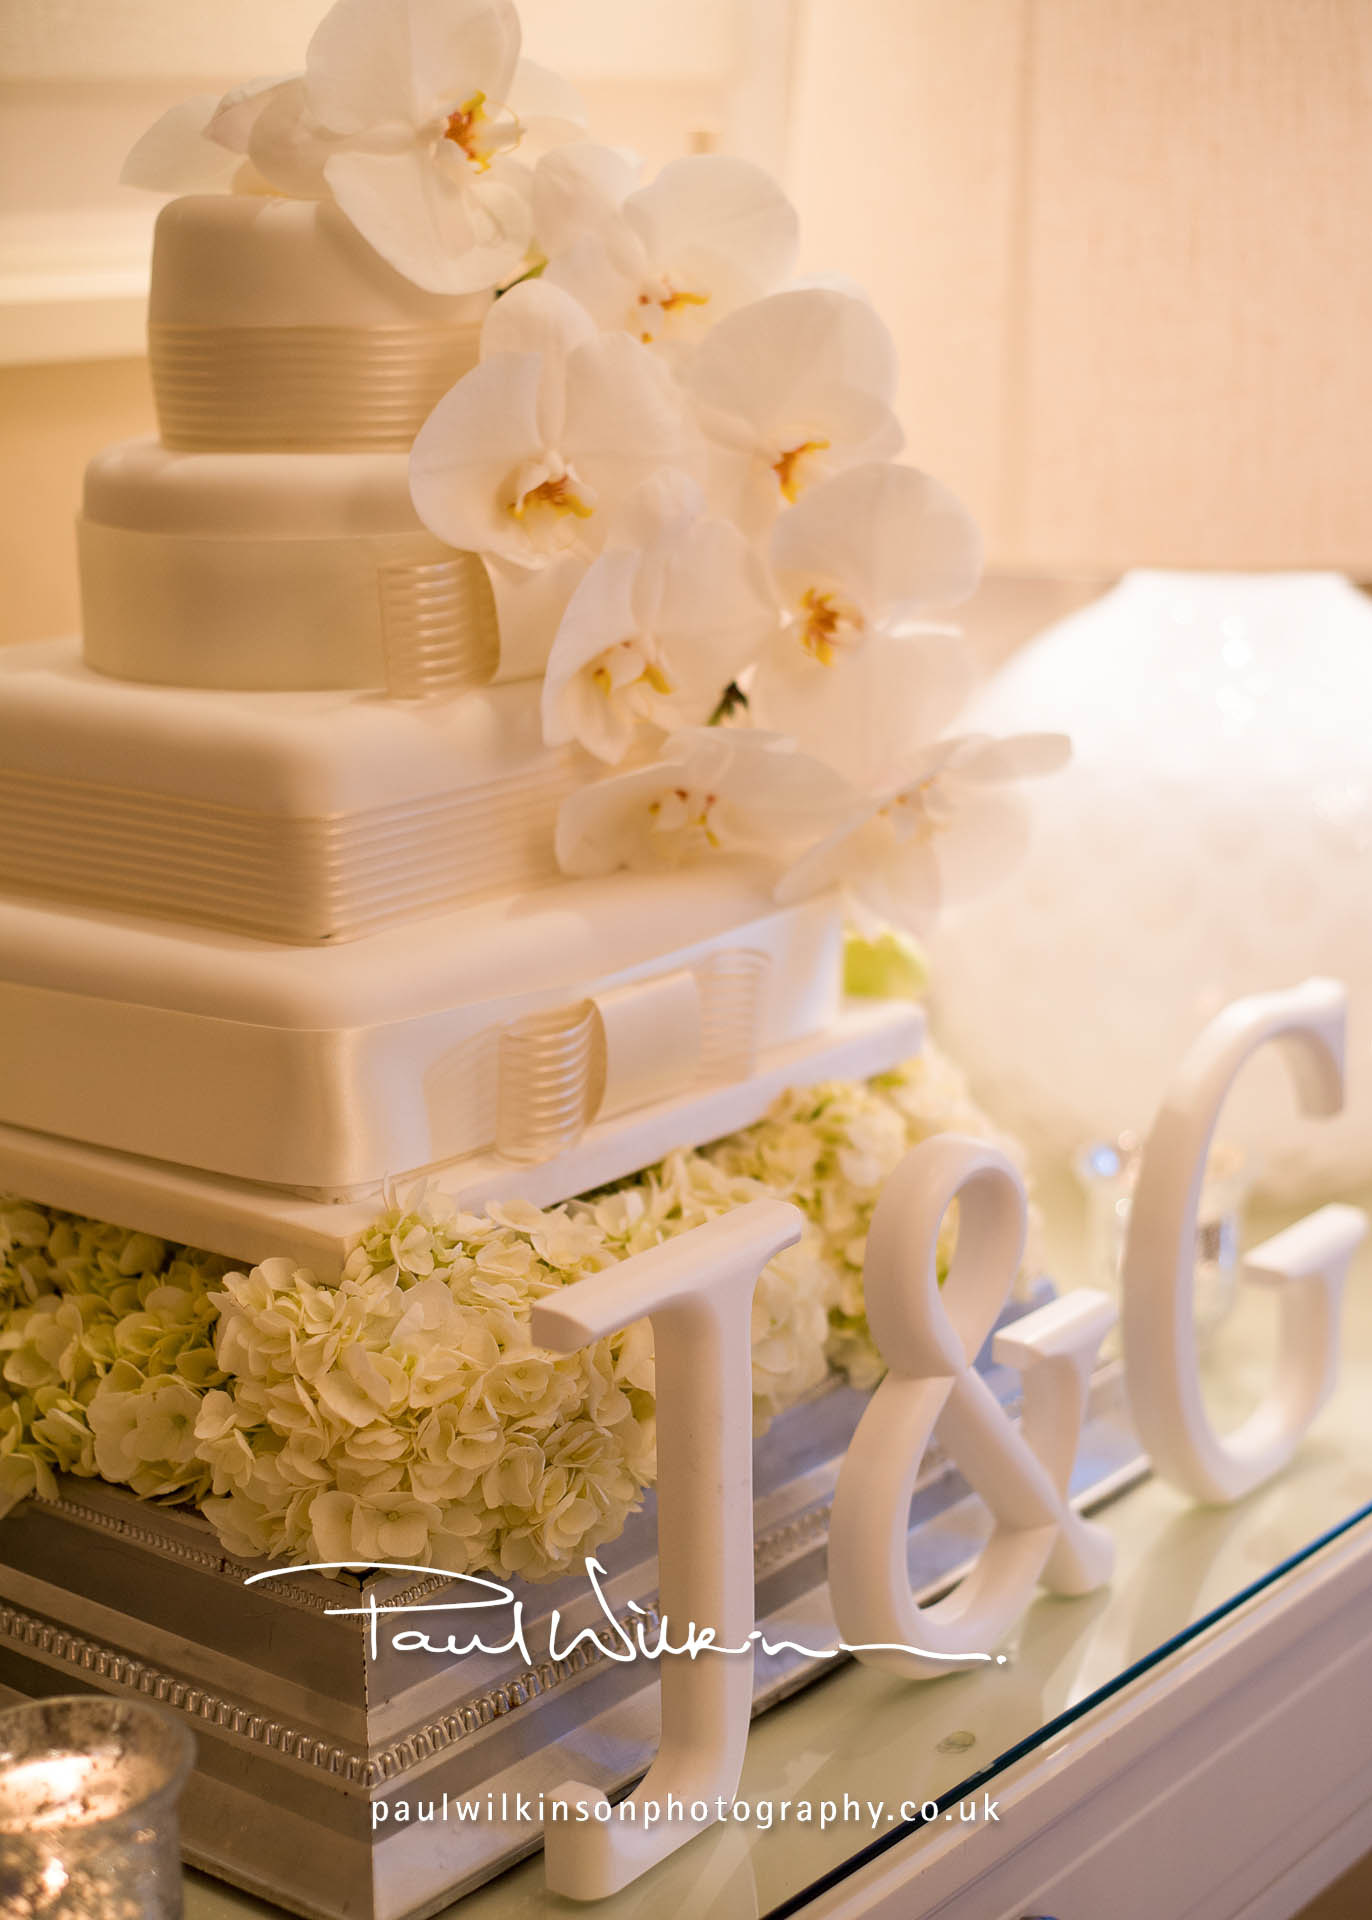 Intimate White Orchid Wedding Fabulous Flowers